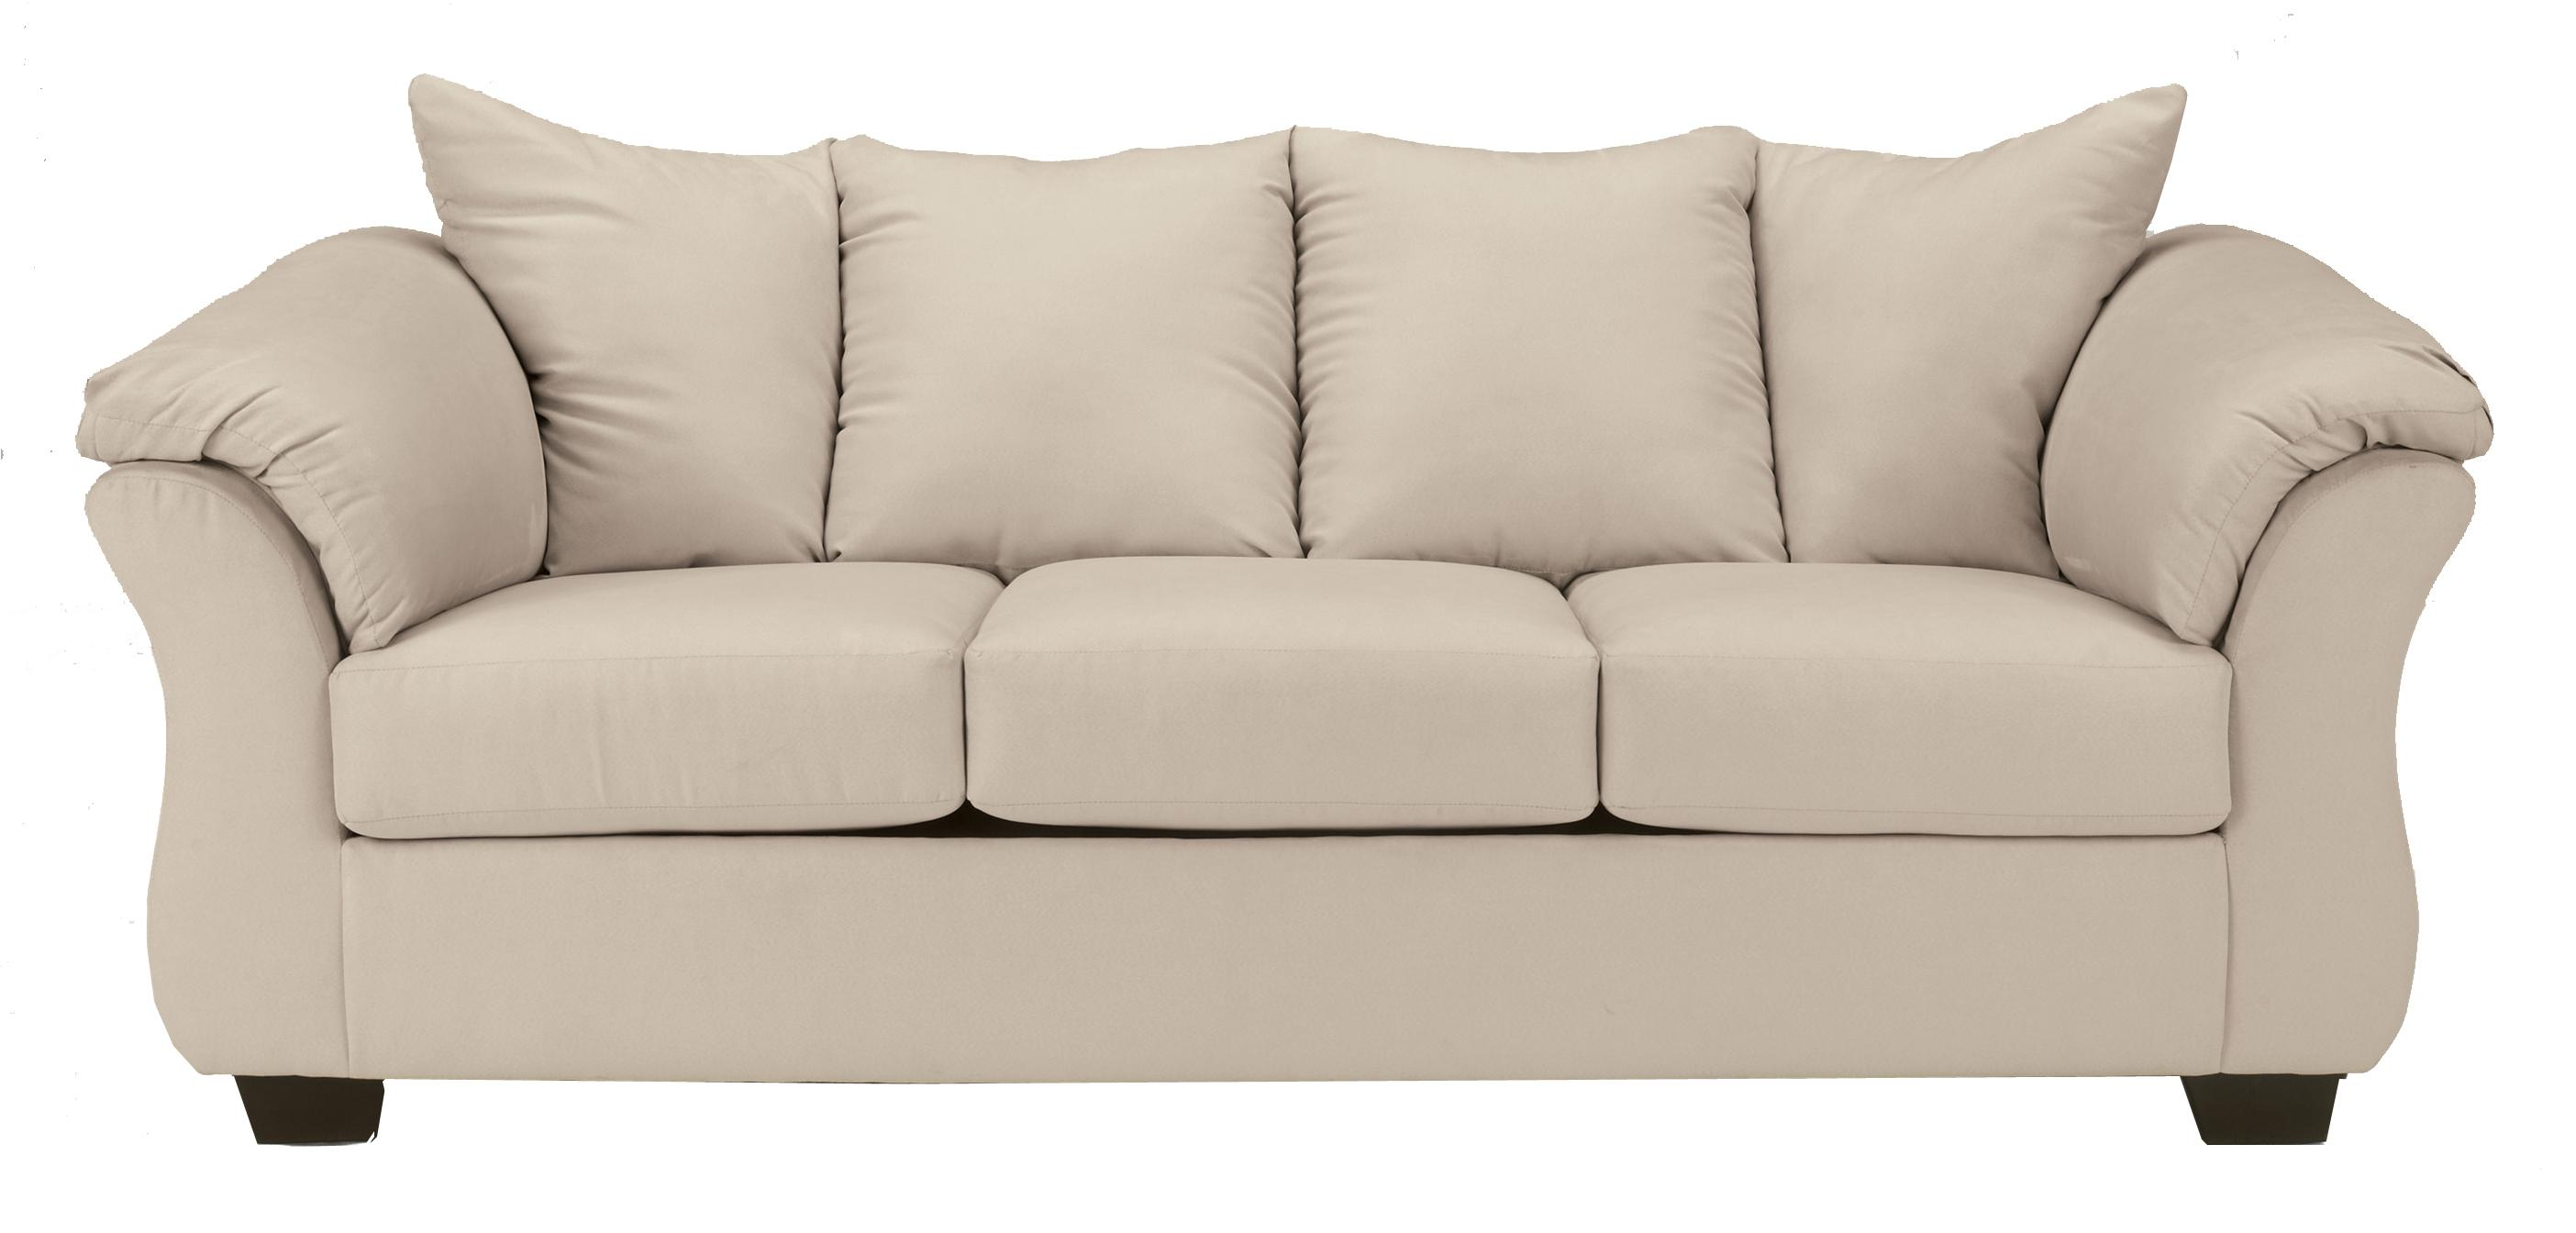 ashley furniture darcy sofa sleeper clearance warehouse london signature design by stone 7500036